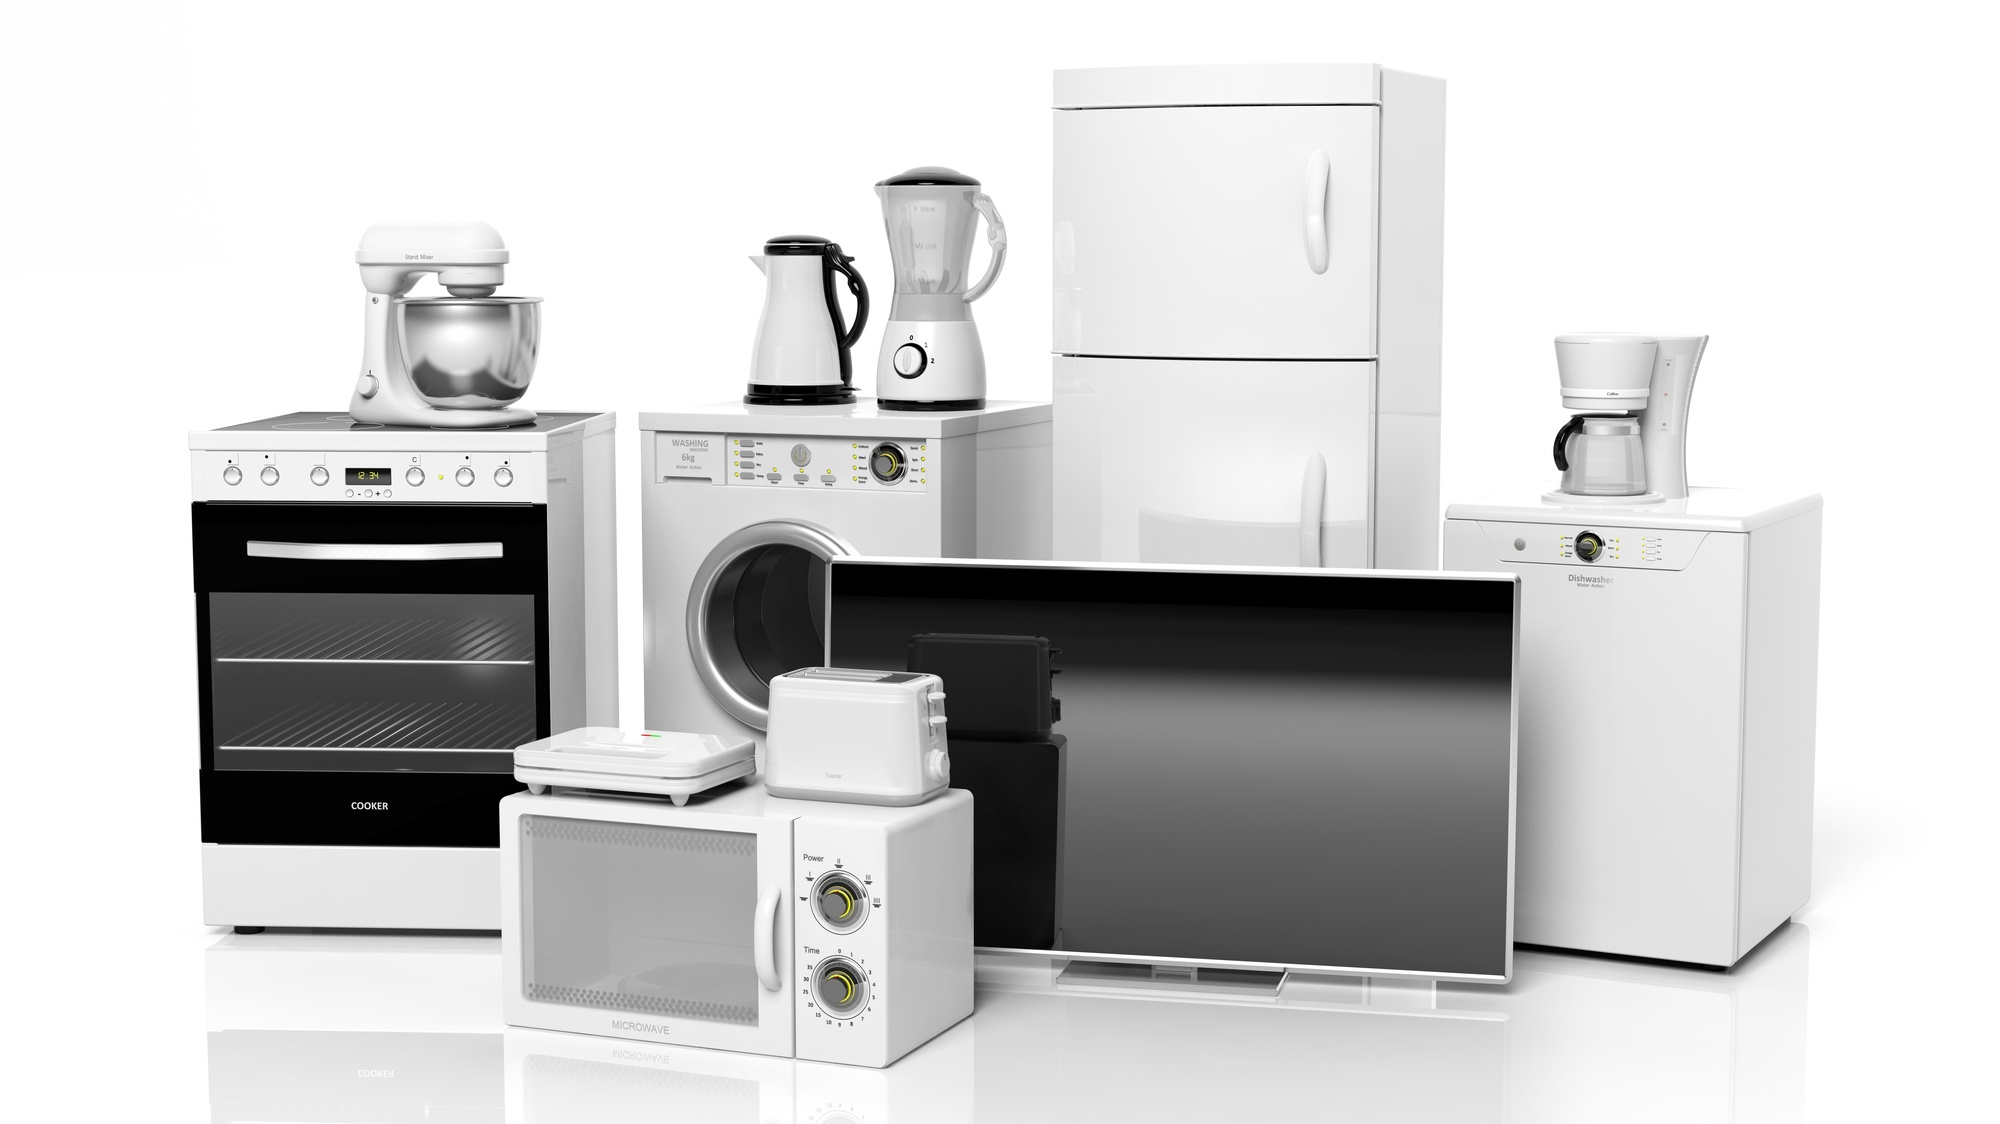 Cheap Kitchen Appliances The Ultimate Guide To Buying Cheap Kitchen Appliances Thrifty